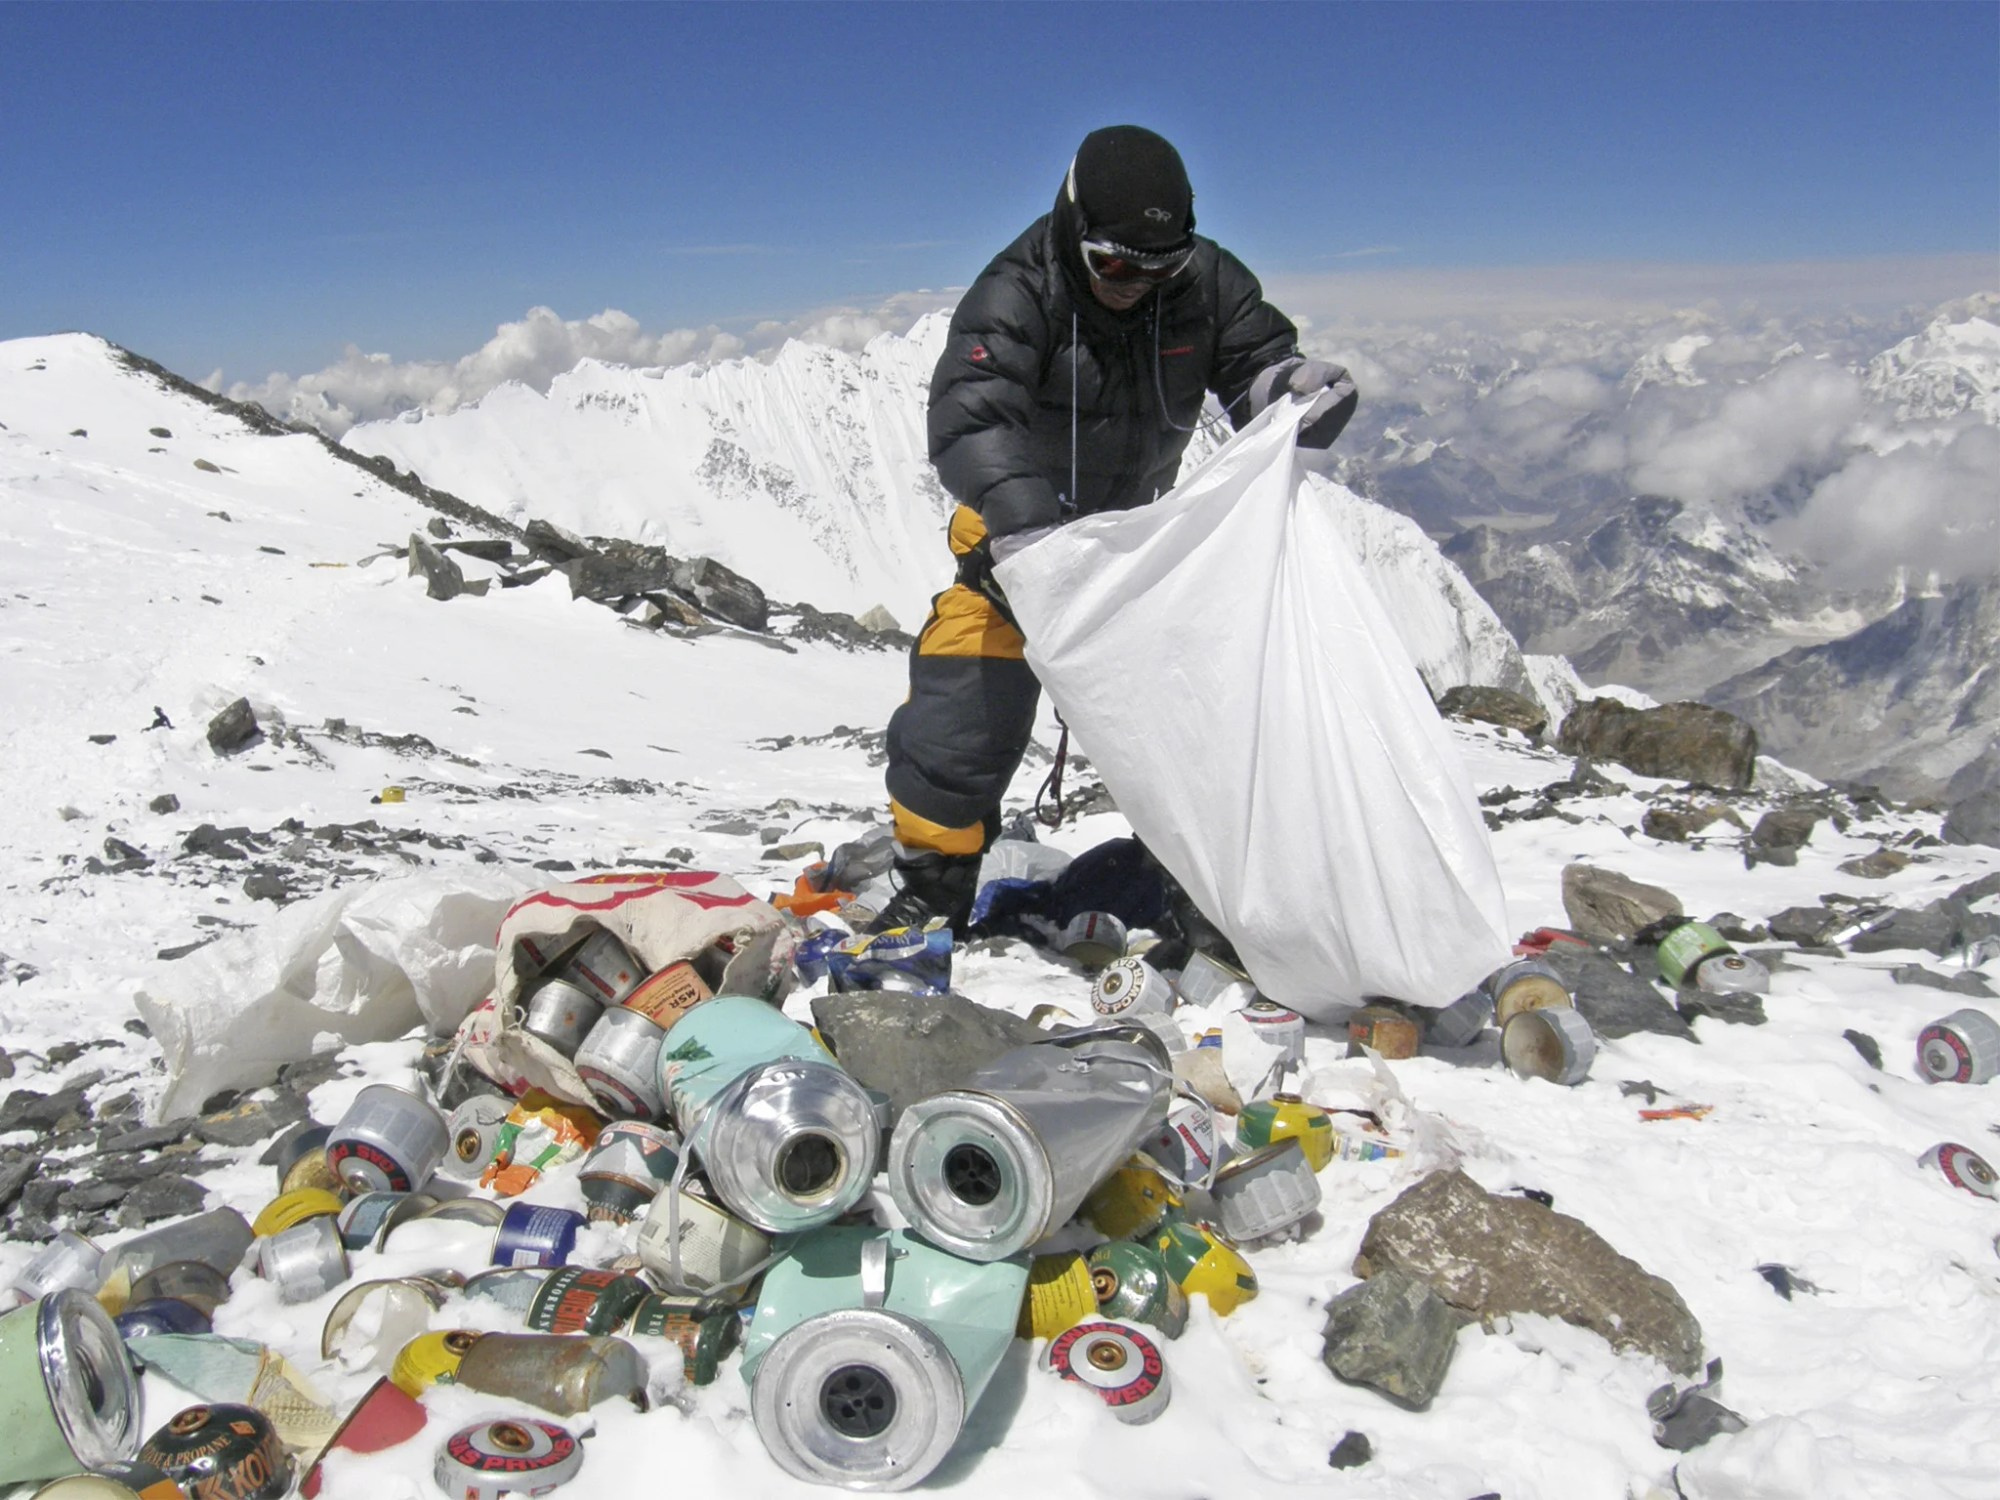 hight resolution of human waste left by climbers on mount everest is causing pollution and could spread diseases